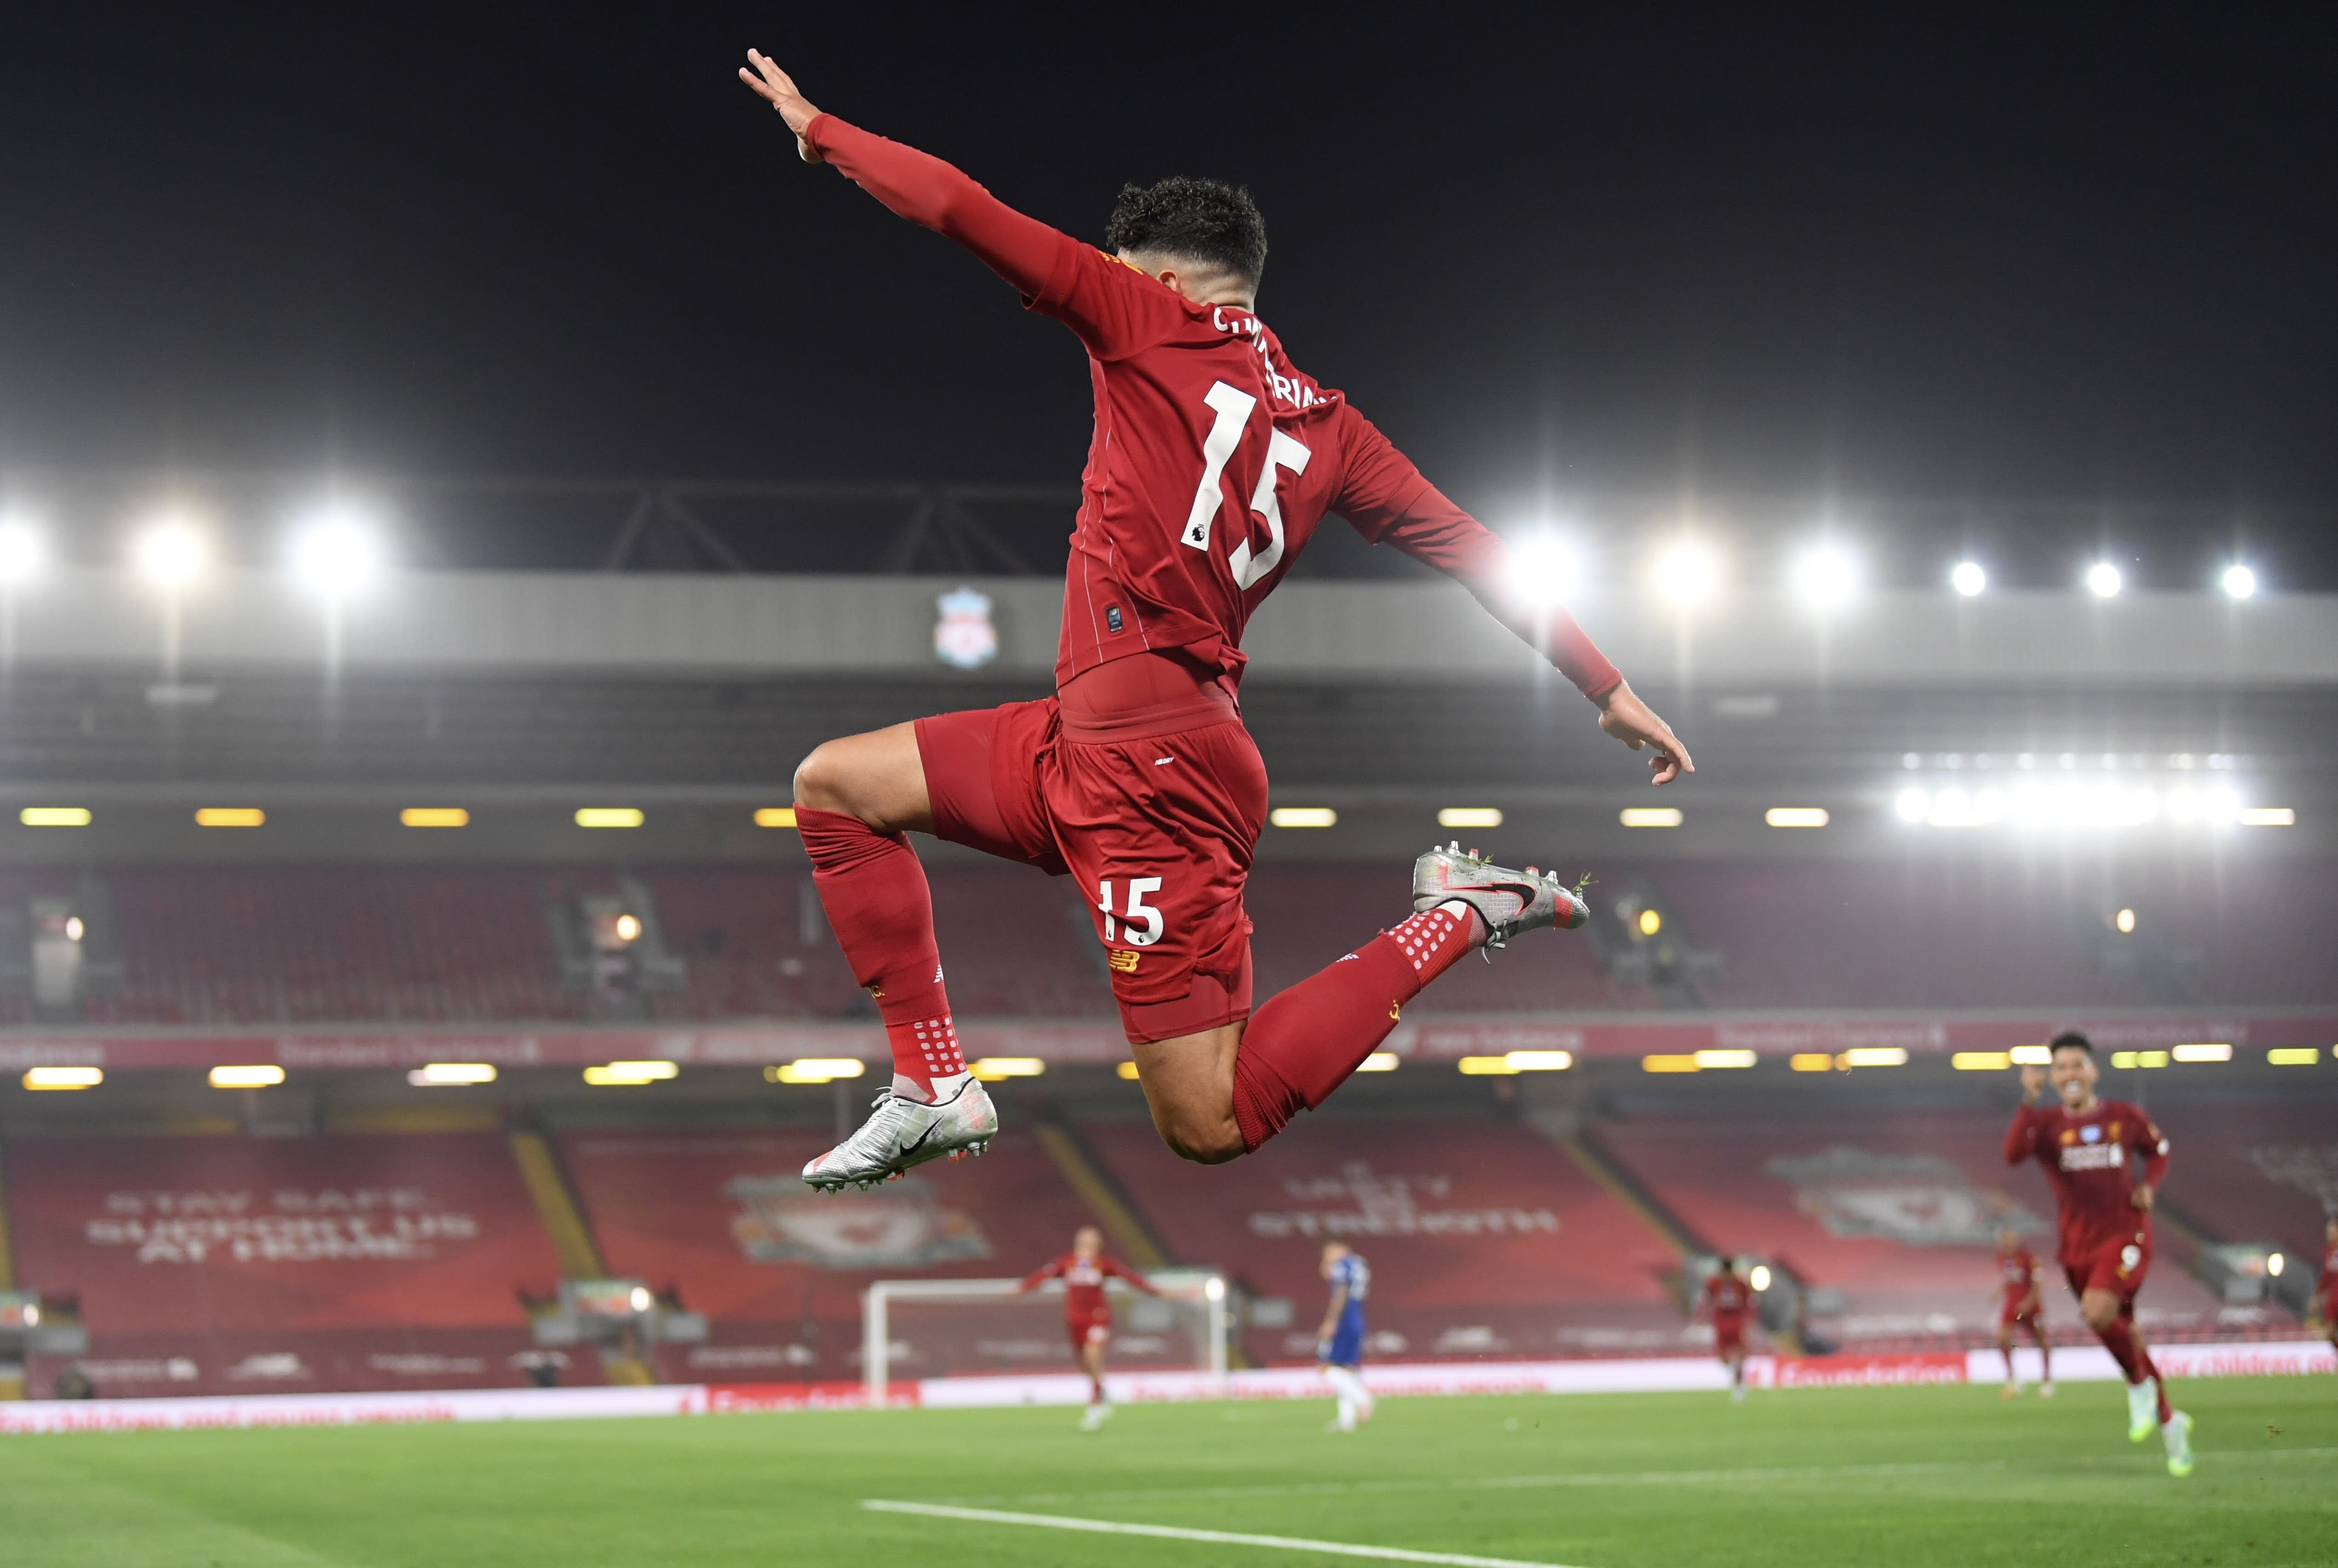 Liverpool's Alex Oxlade-Chamberlain celebrates scoring his side's fifth goal during the English Premier League soccer match between Liverpool and Chelsea at Anfield stadium in Liverpool, England, Wednesday, July 22, 2020. (Laurence Griffiths, Pool via AP)